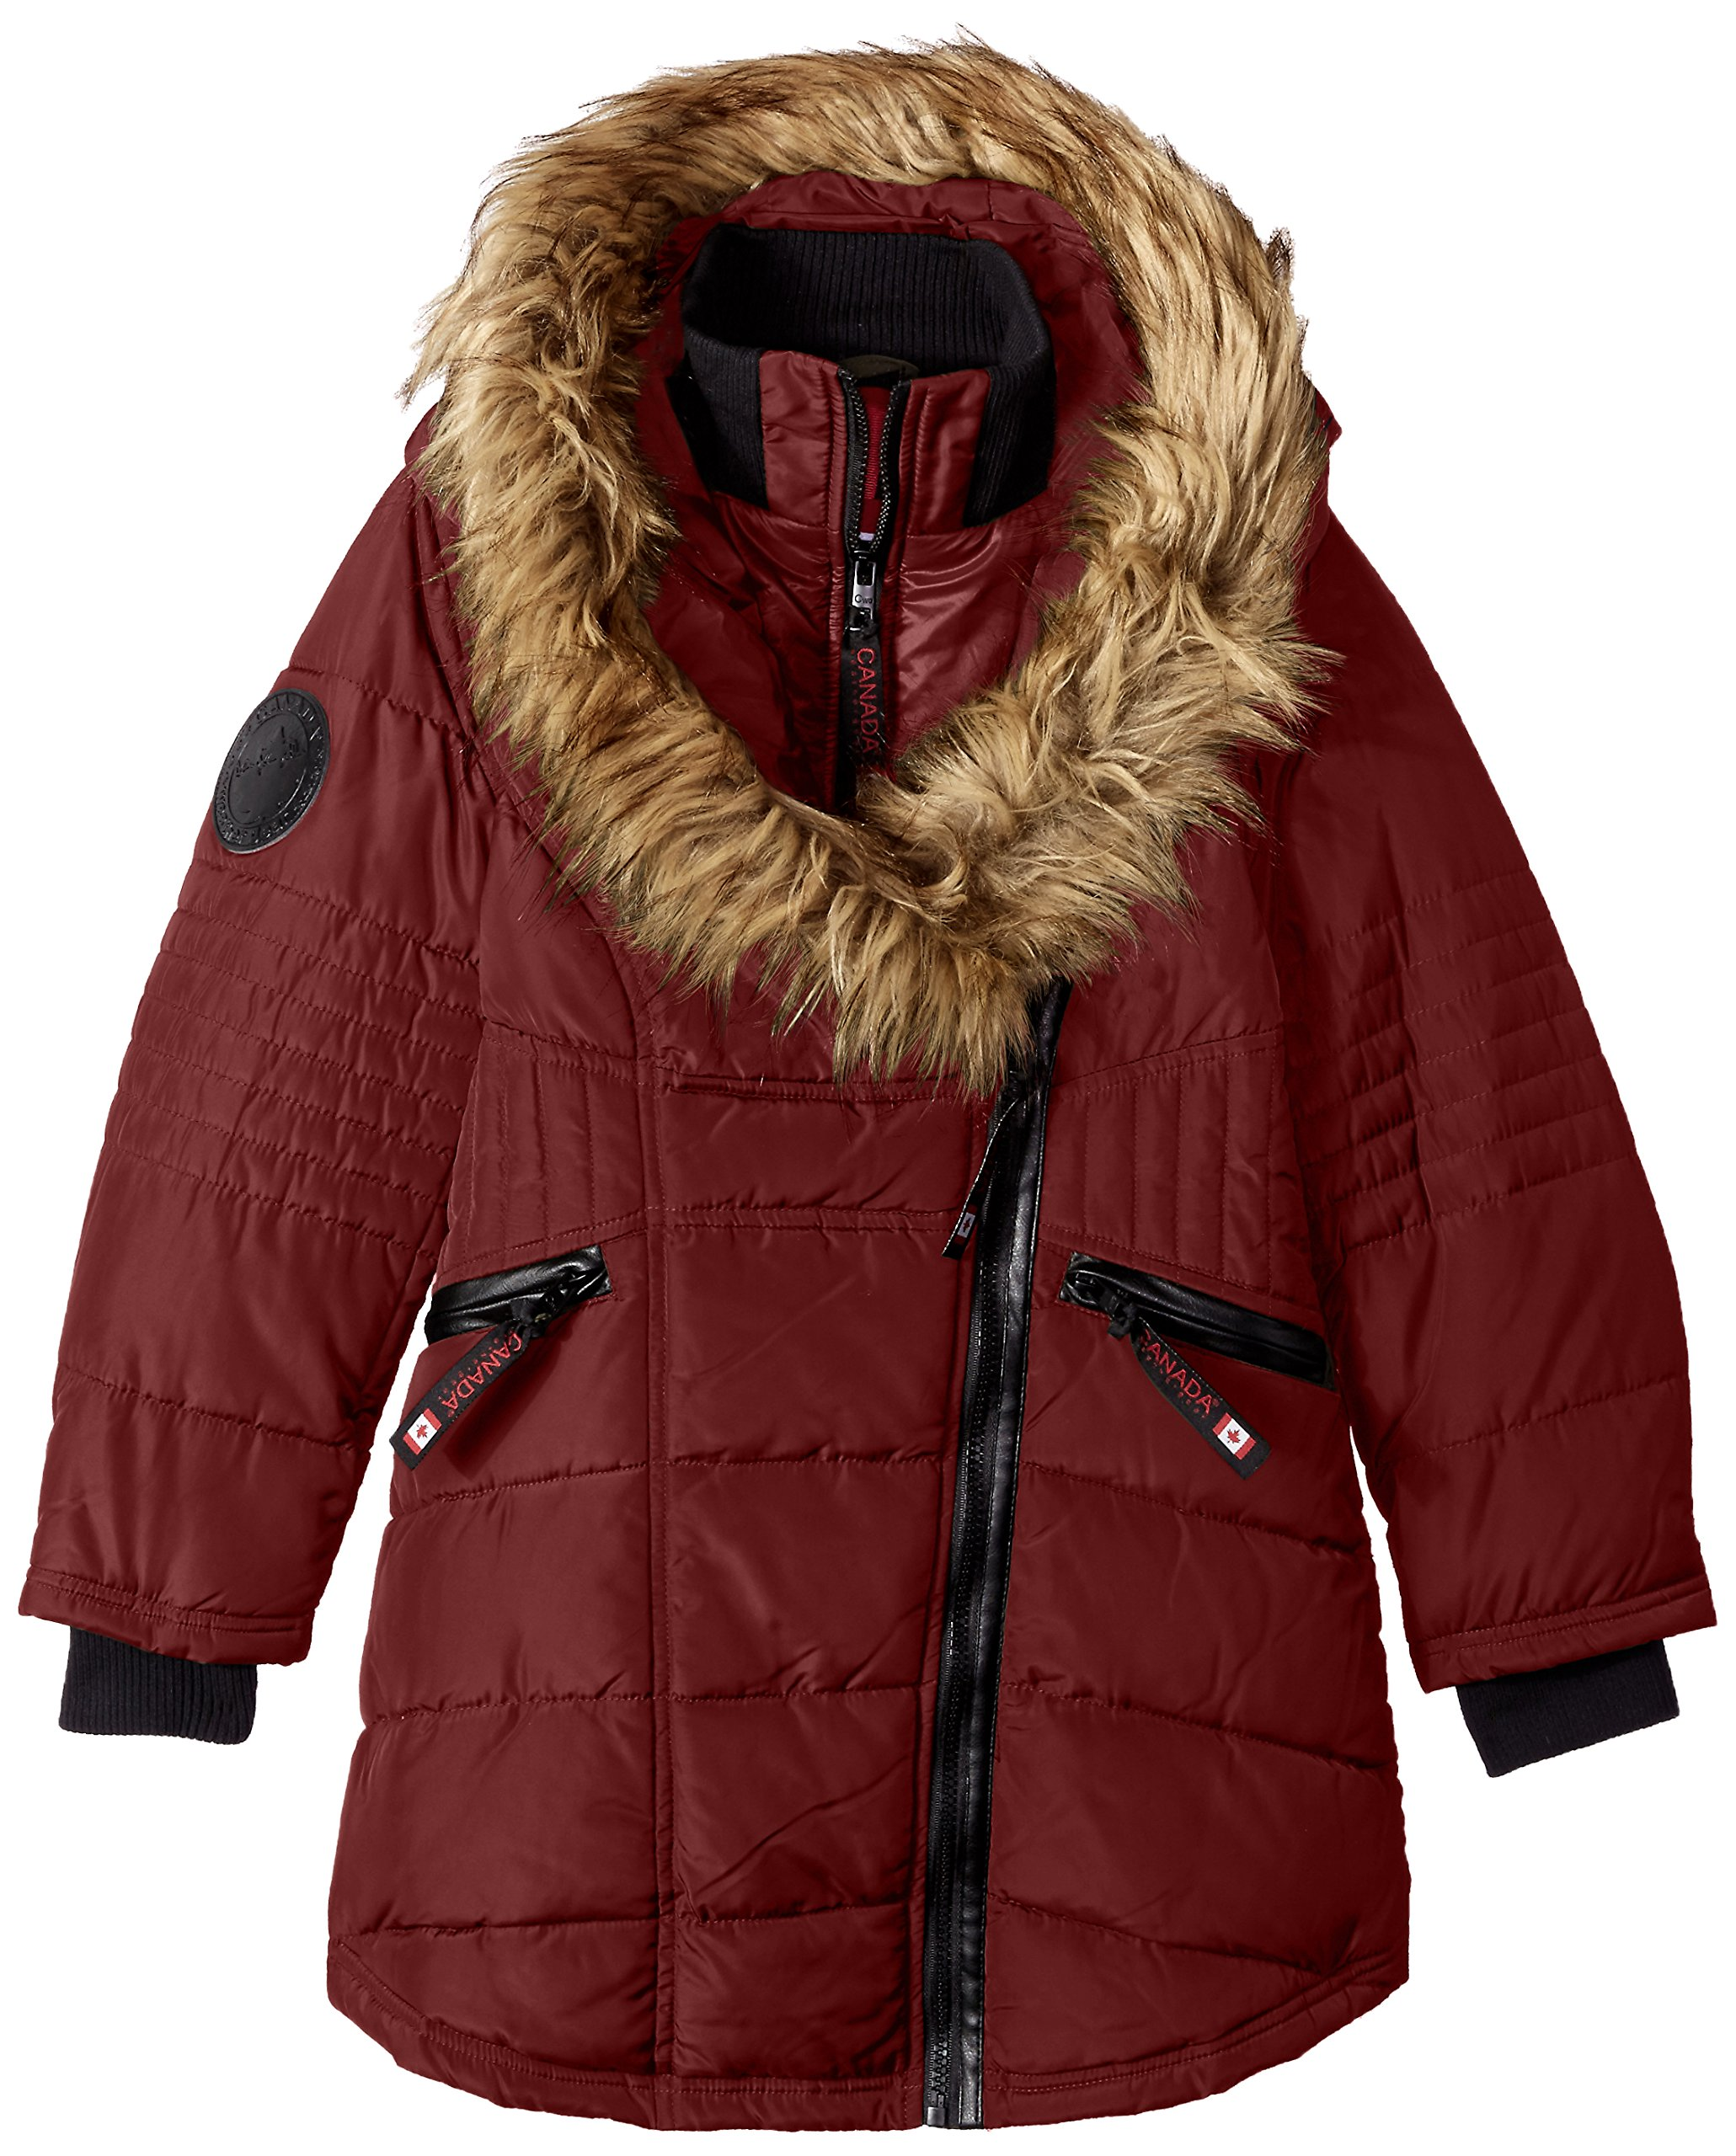 CANADA WEATHER GEAR Big Girls' Long Outerwear Jacket (More Styles Available), Long Bubble/Wine/Natural, 10/12